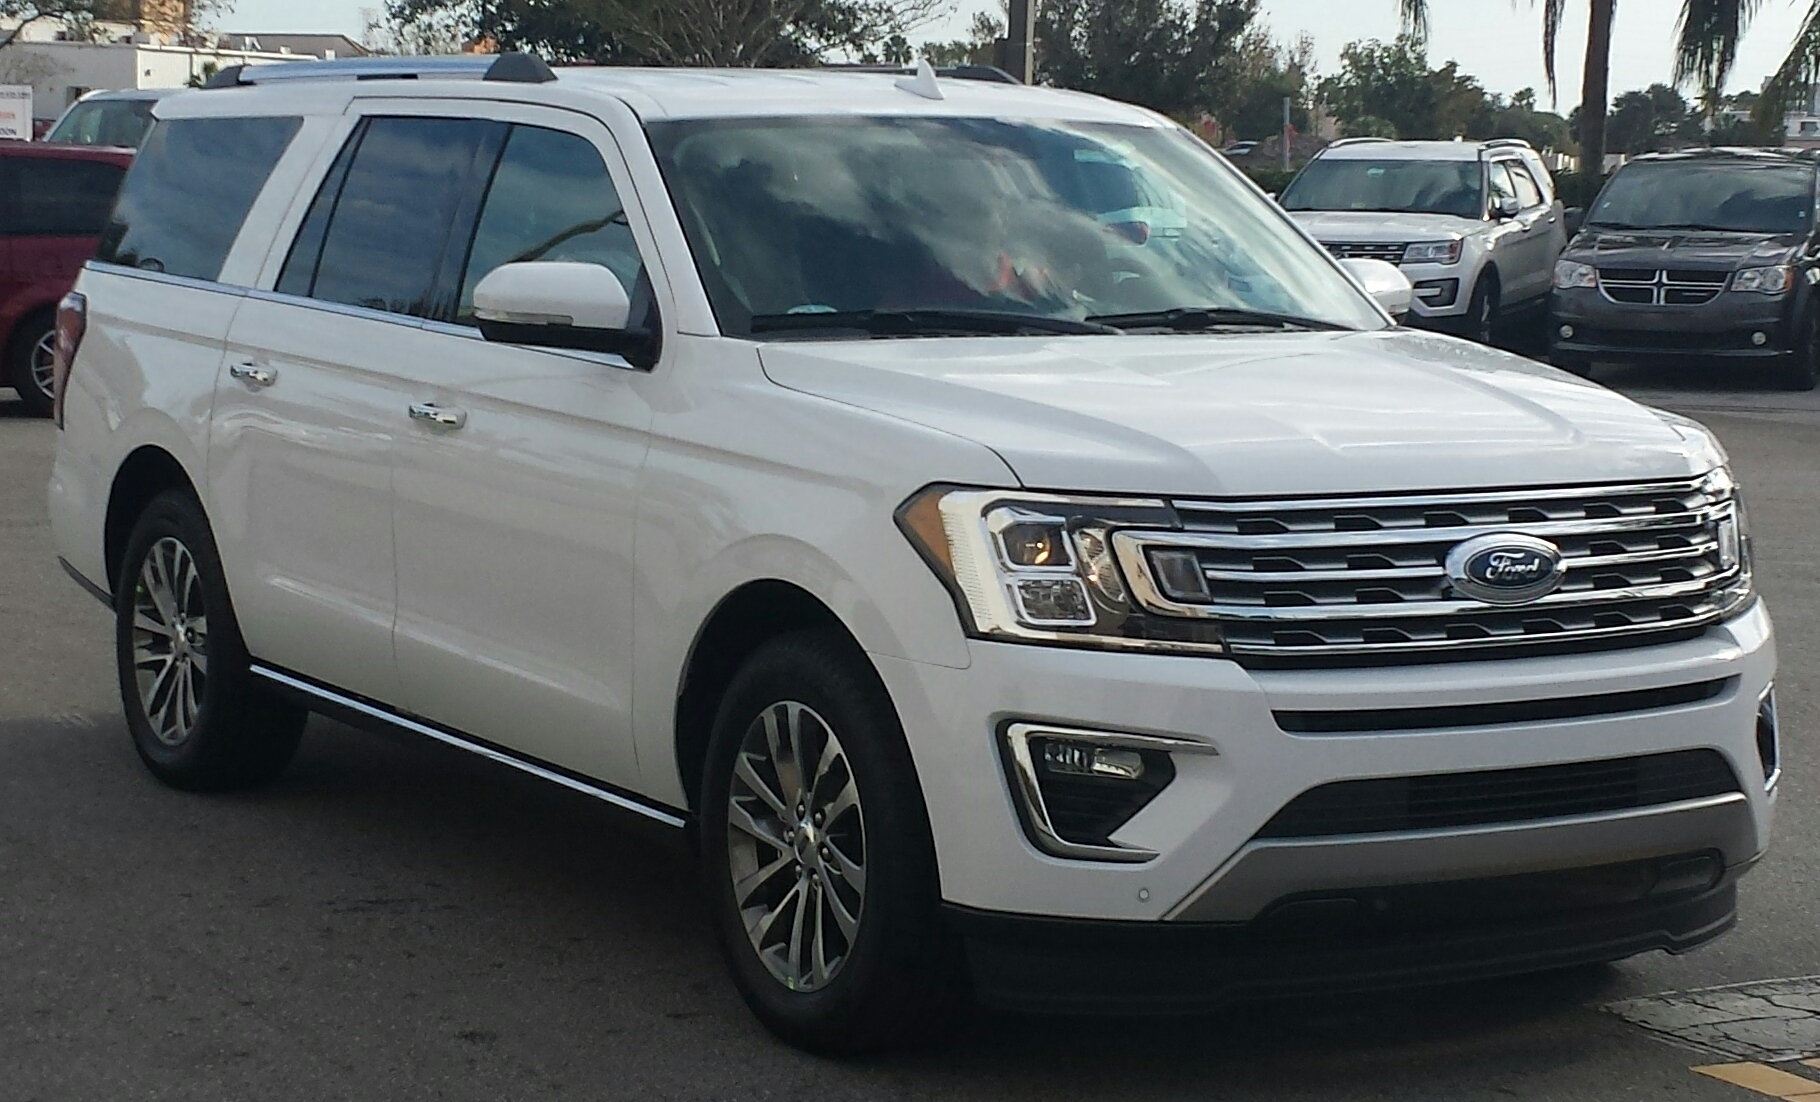 Ford Expedition Wikipedia